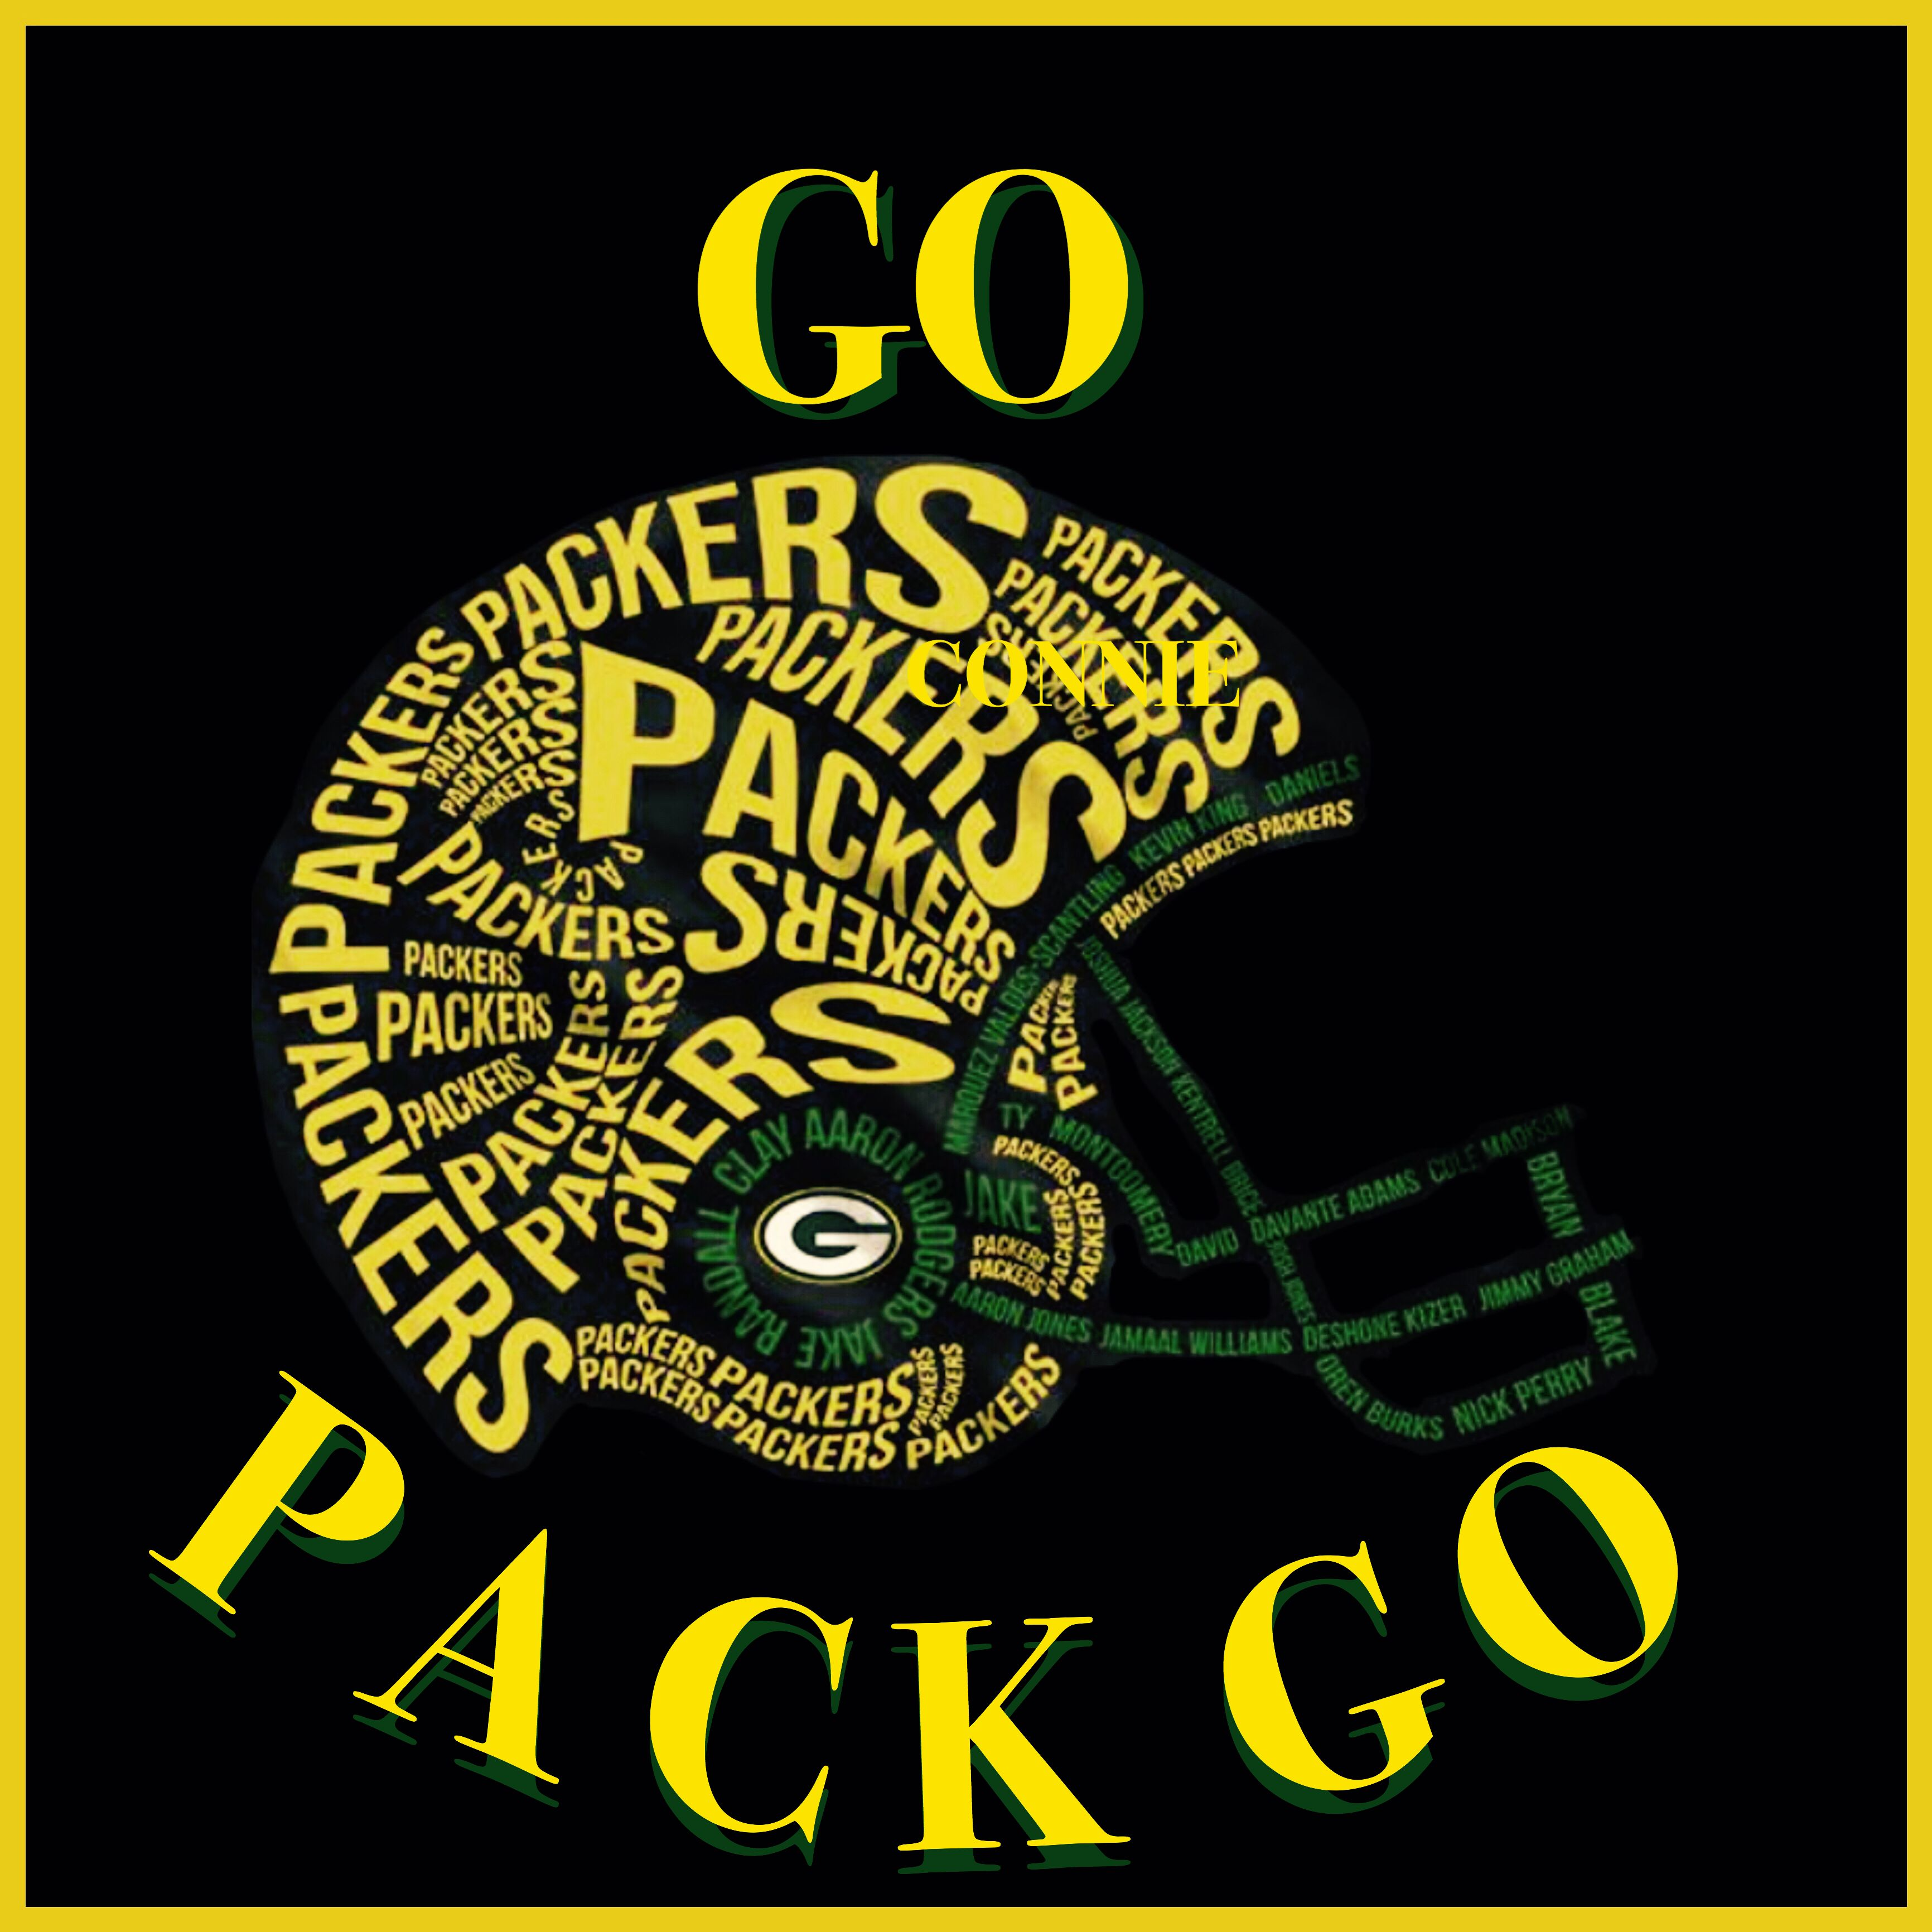 Pin By F H Gold Designs On Green Bay Packer Nation Green Bay Packers Green Bay Packers Fans Packers Football